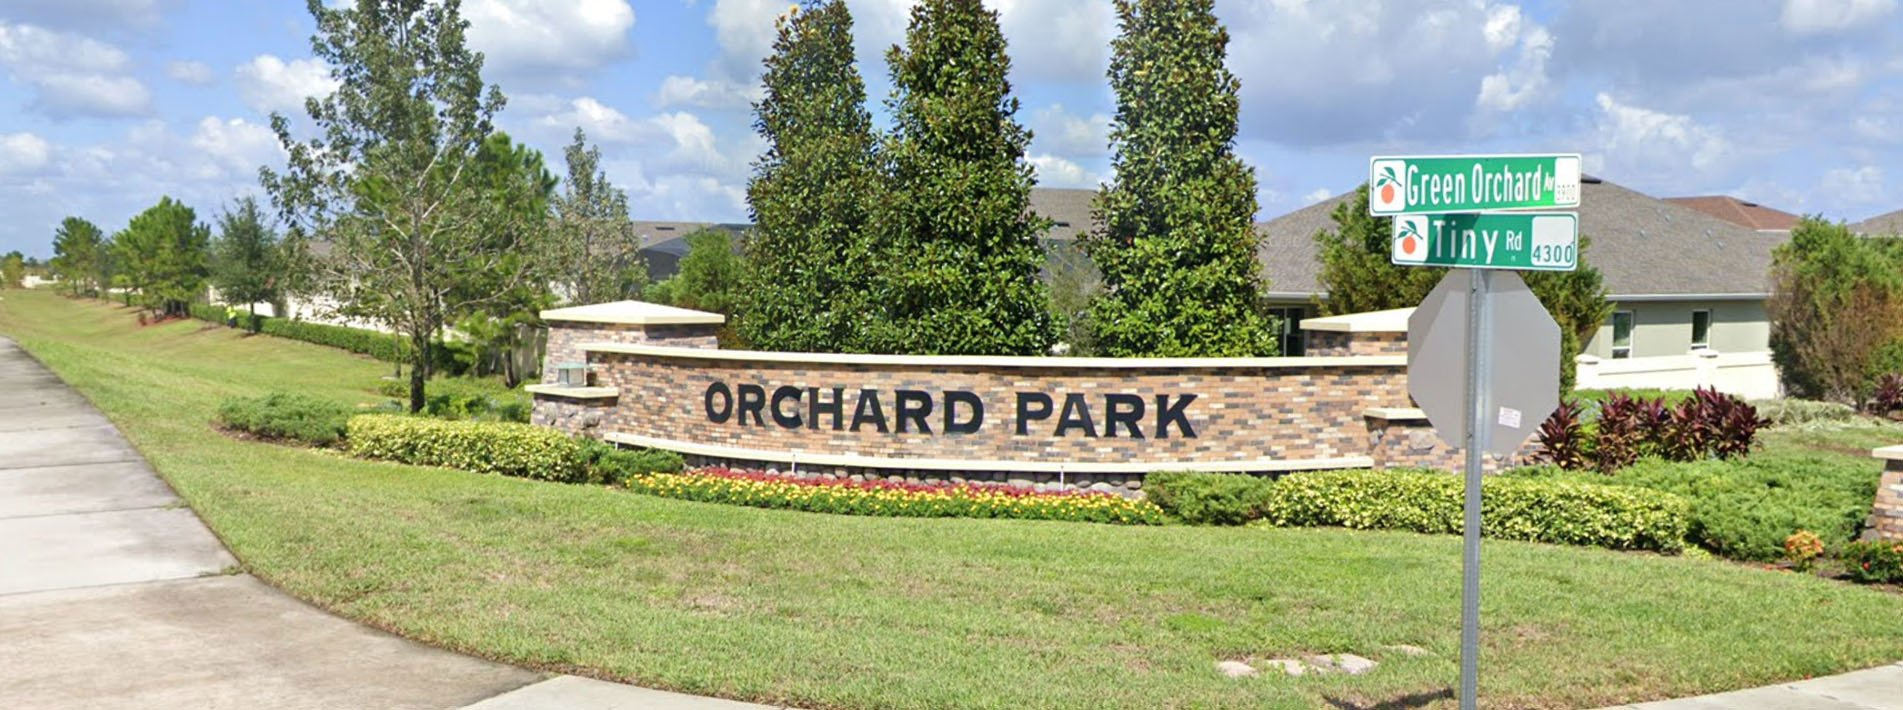 Orchard Park Winter Garden Real Estate